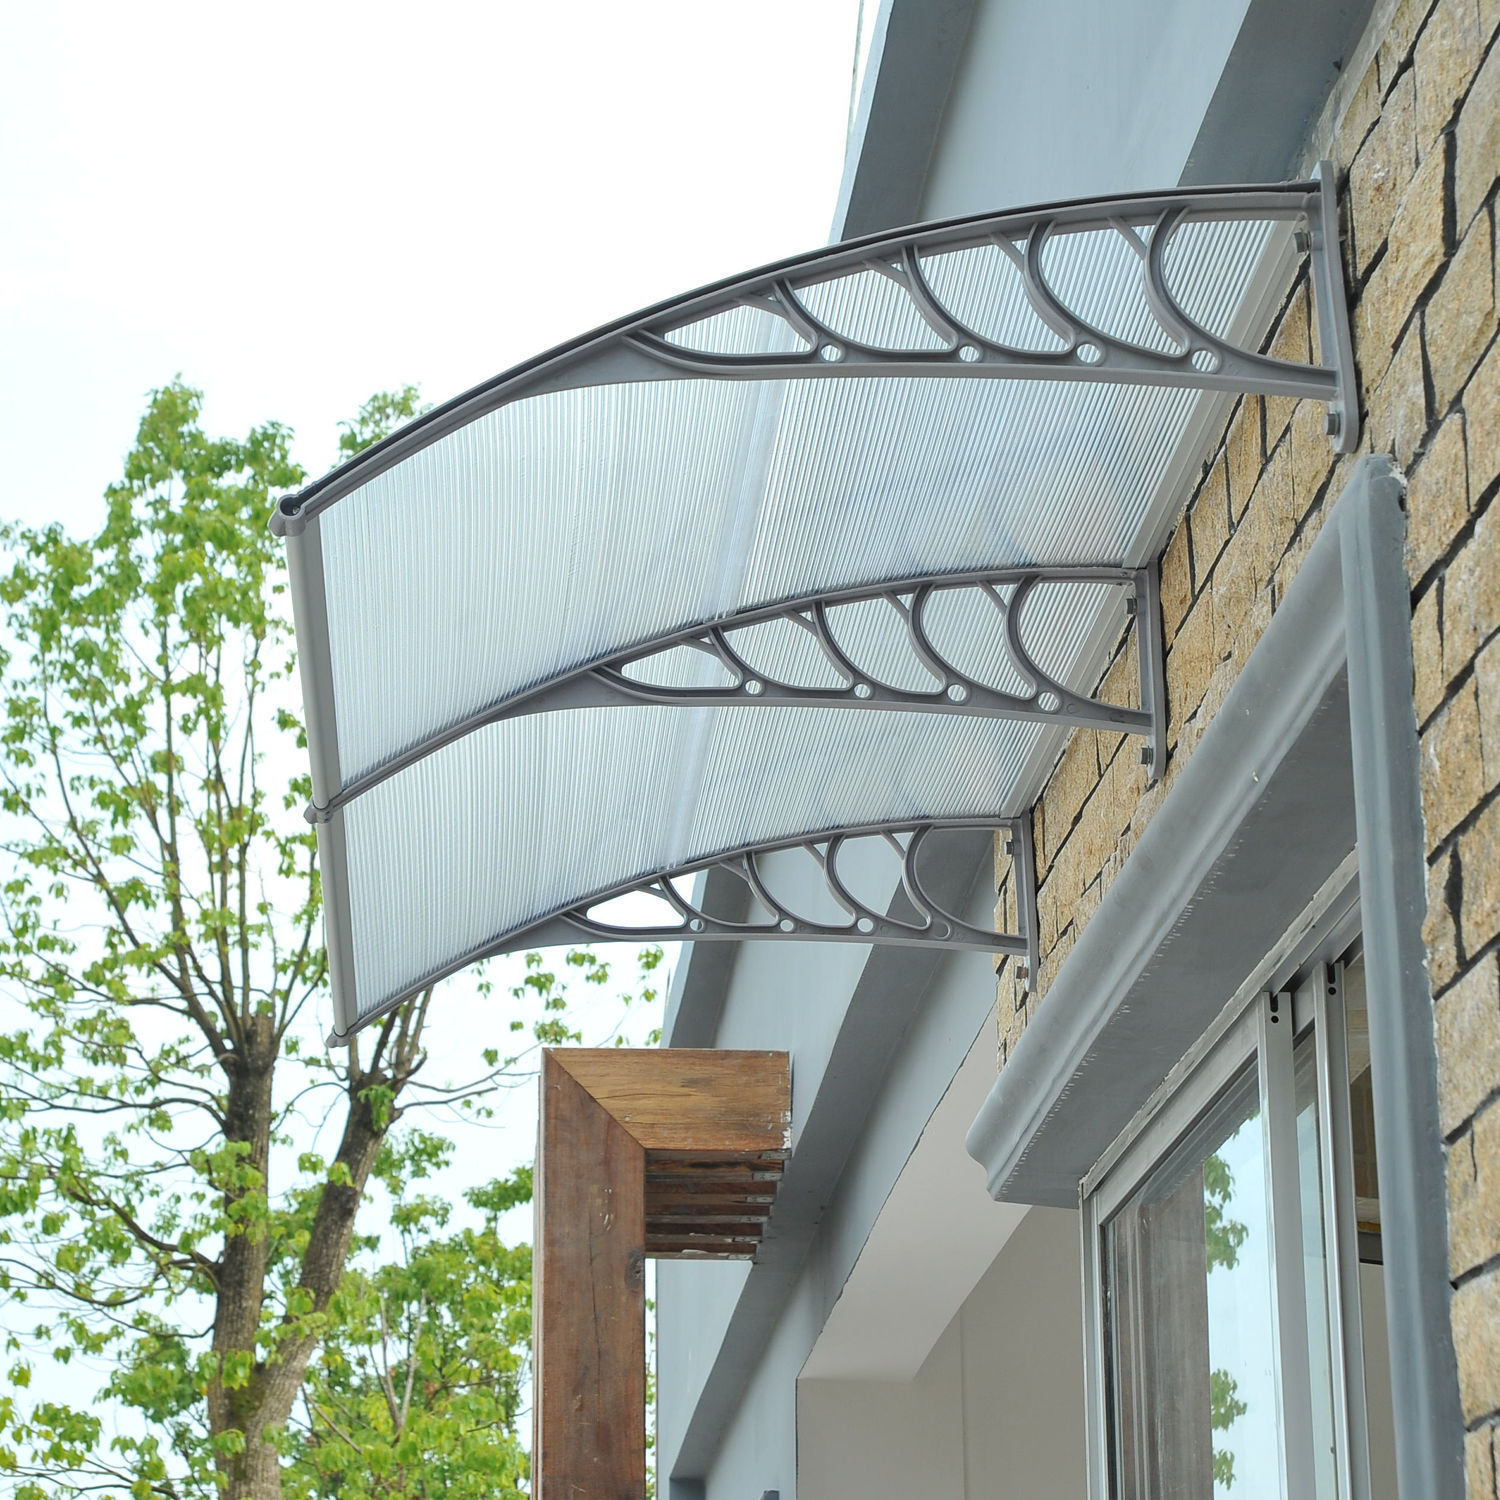 Canopies Canopy And Front Door Glass And: Outdoor Polycarbonate Front Door Window Awning Patio